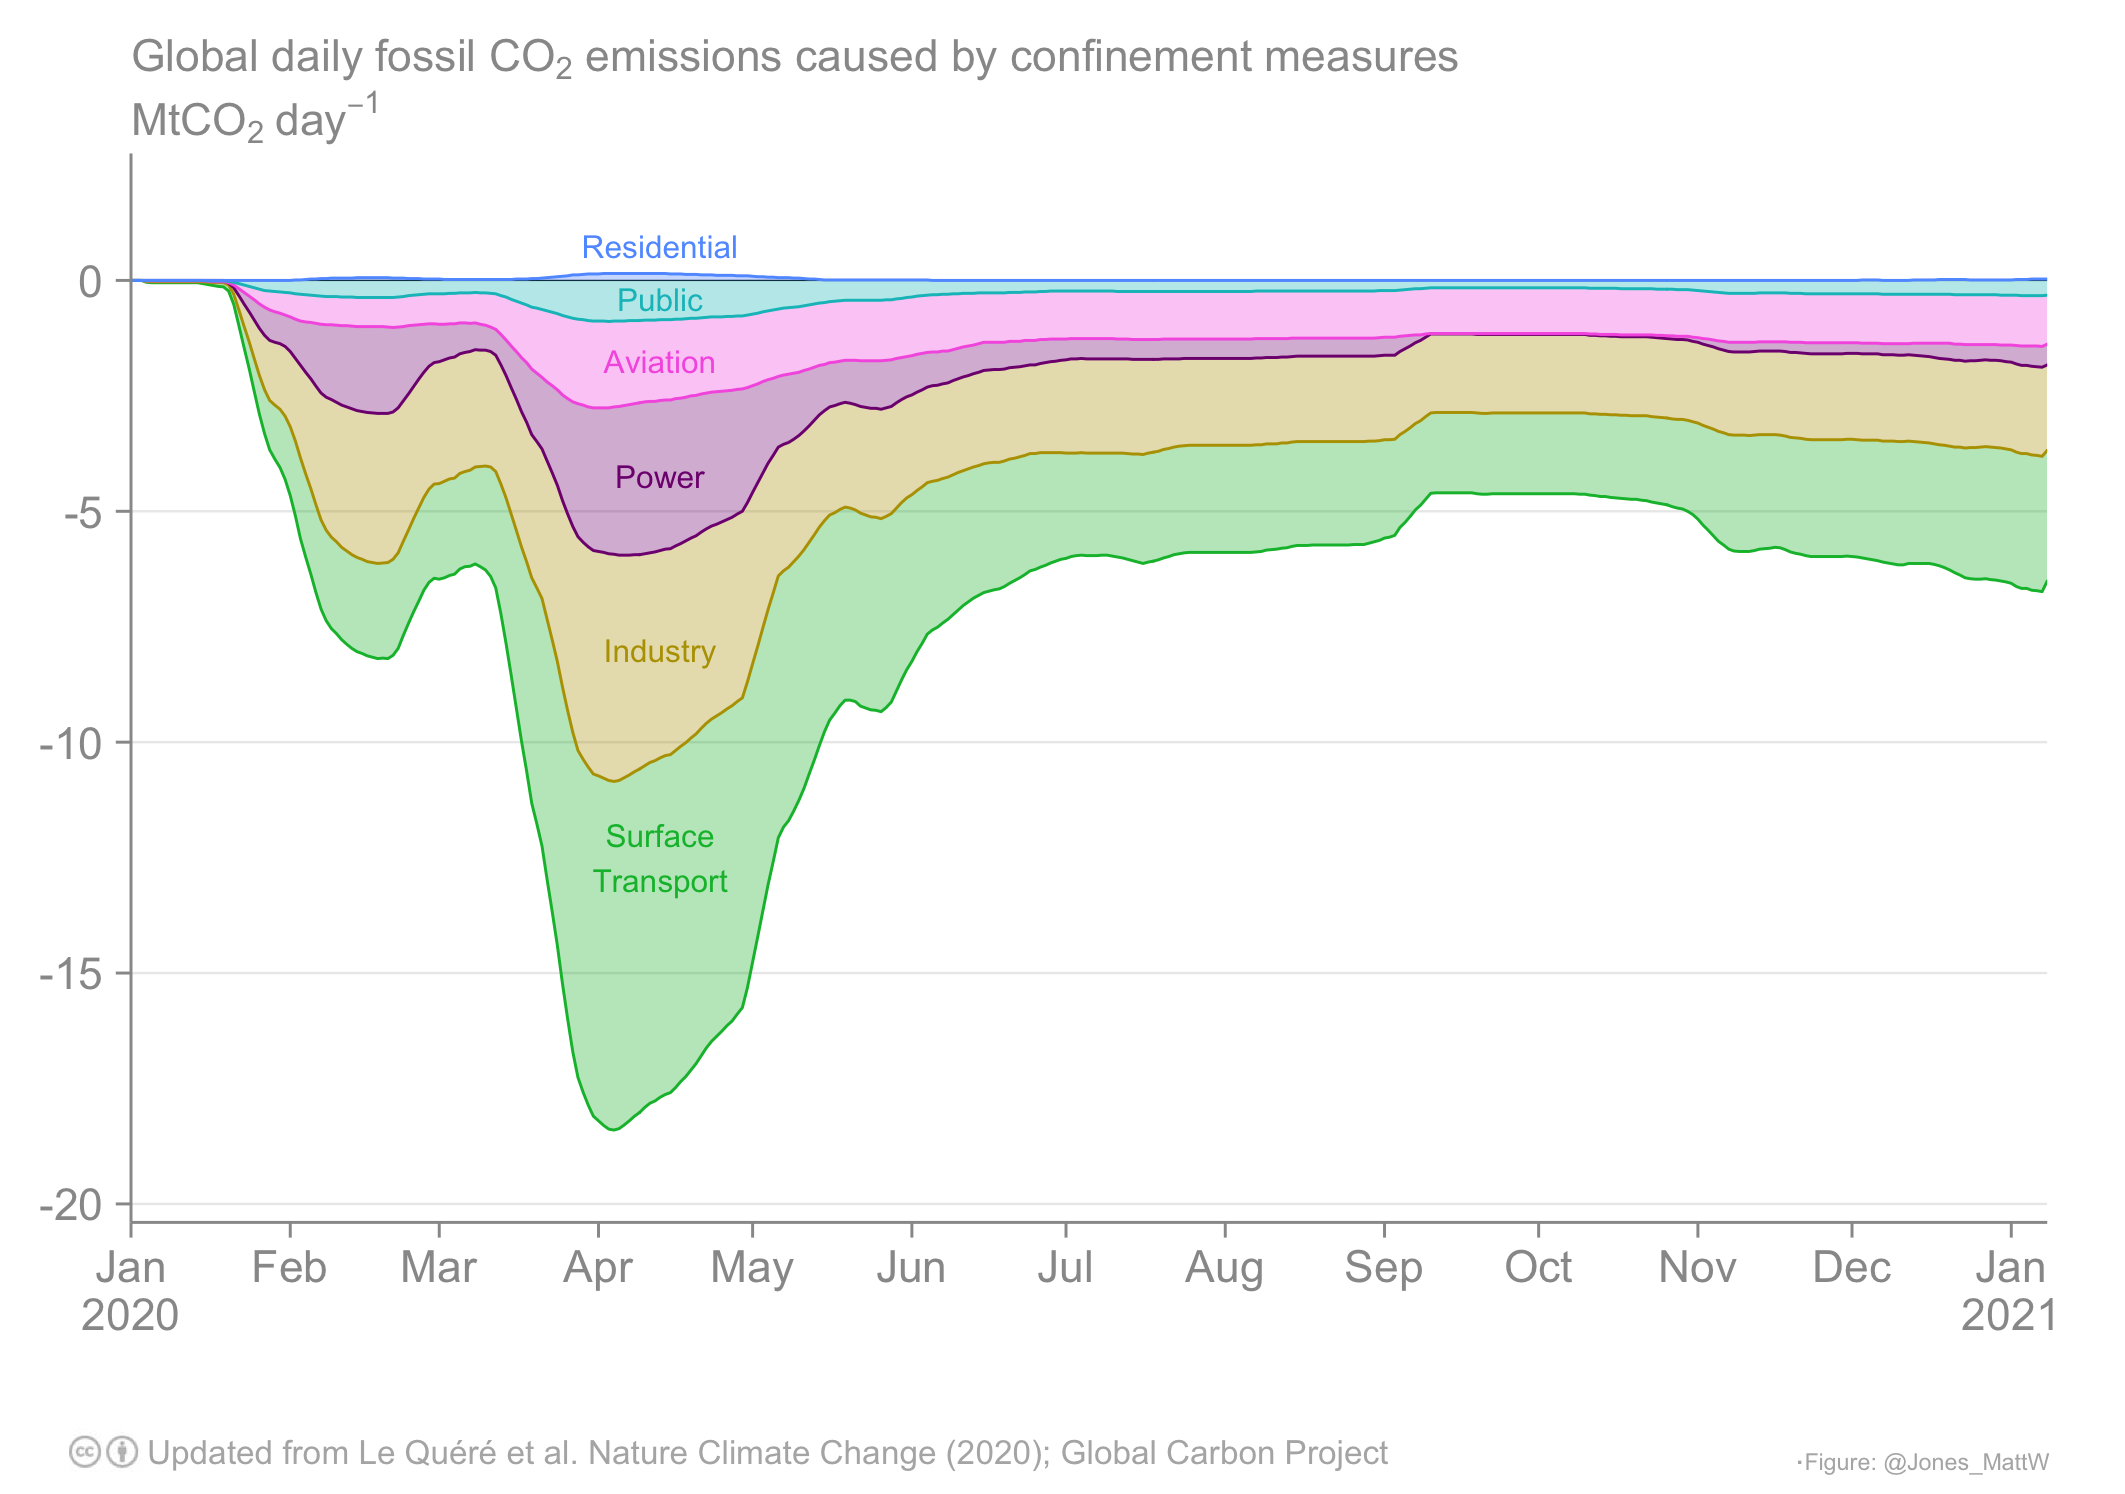 Estimated change in global daily fossil CO2 emissions caused by confinement measures by sector (MtCO2 day−1). The uncertainty ranges represent the full range of our estimates. Changes are relative to mean daily emissions in 2019 from those sectors. See Le Quéré et al. (2021) for details